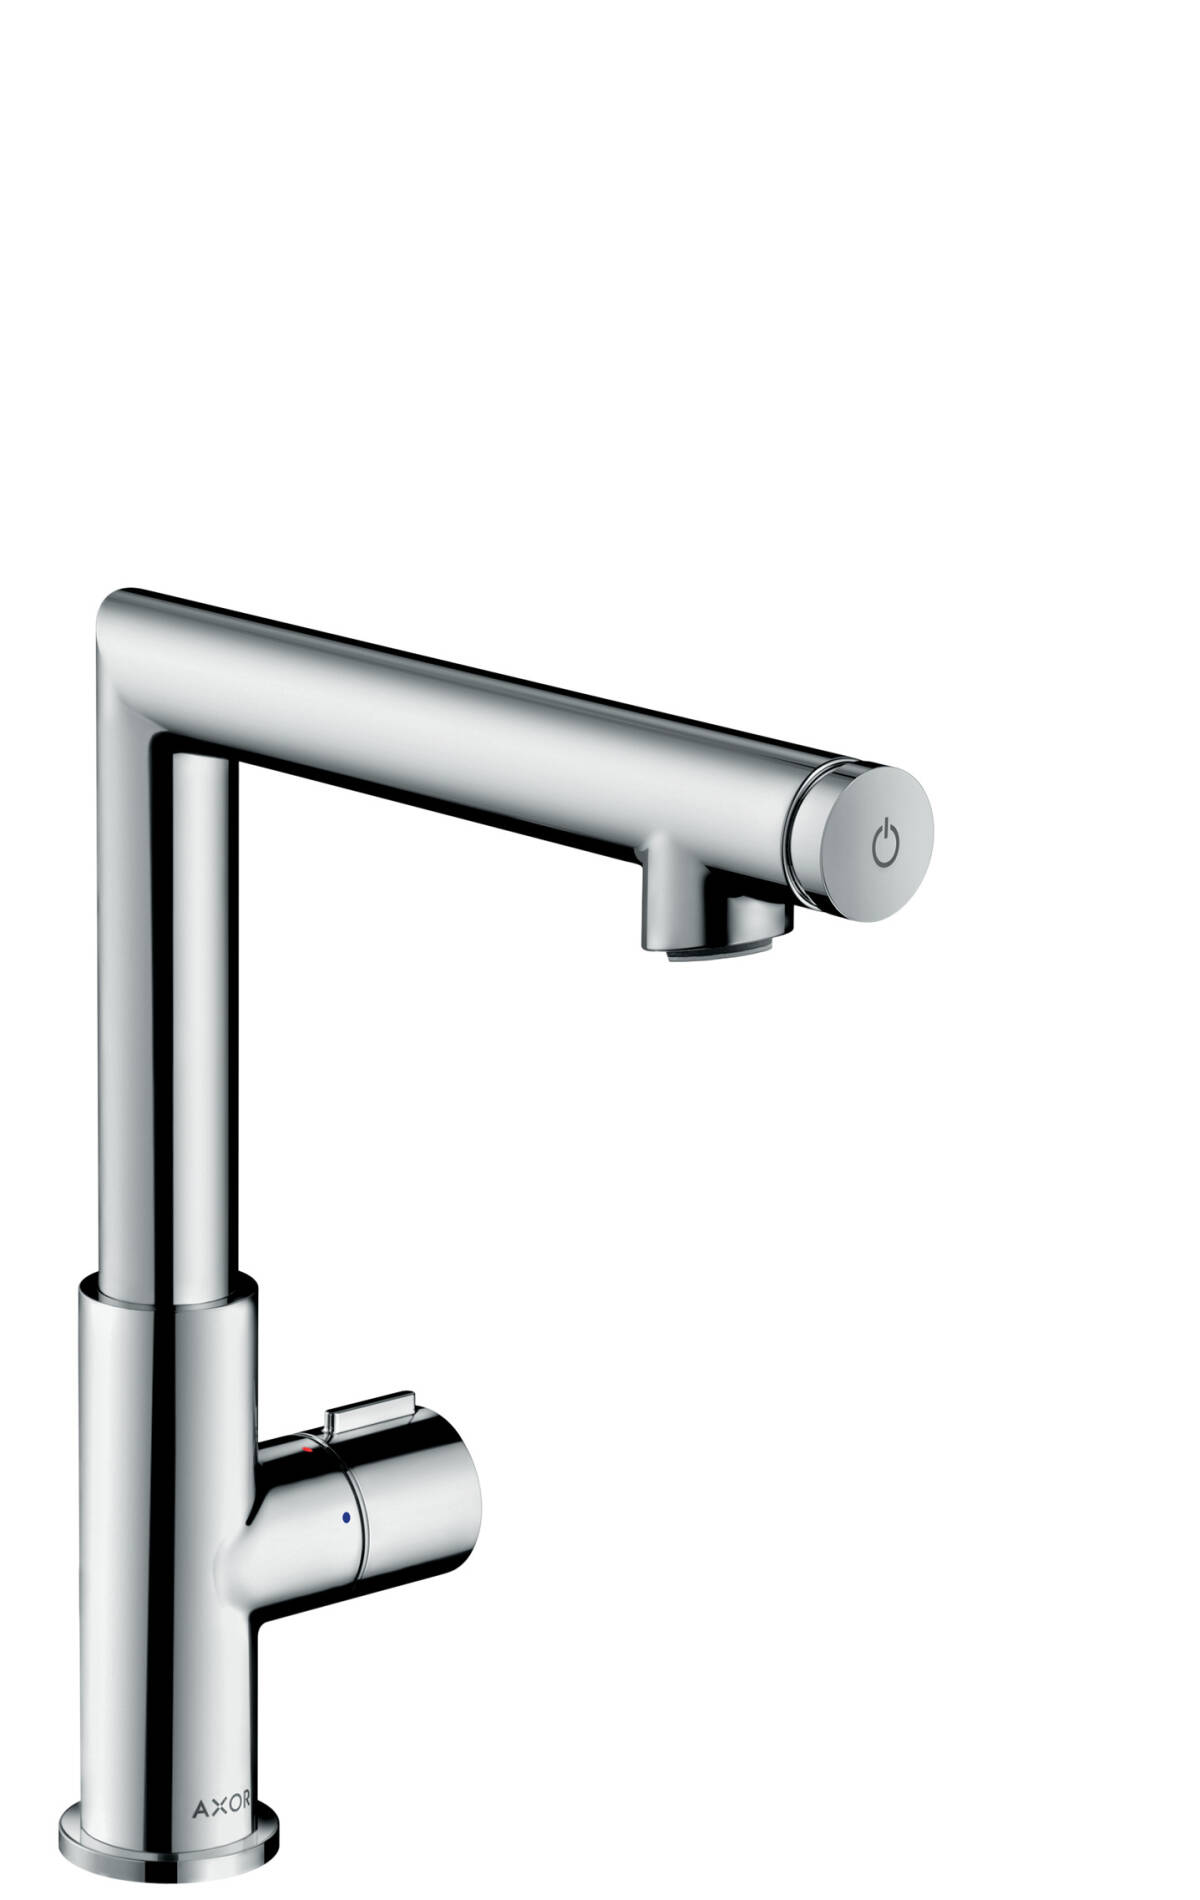 Basin mixer Select 220 with pop-up waste set, Polished Chrome, 45016020